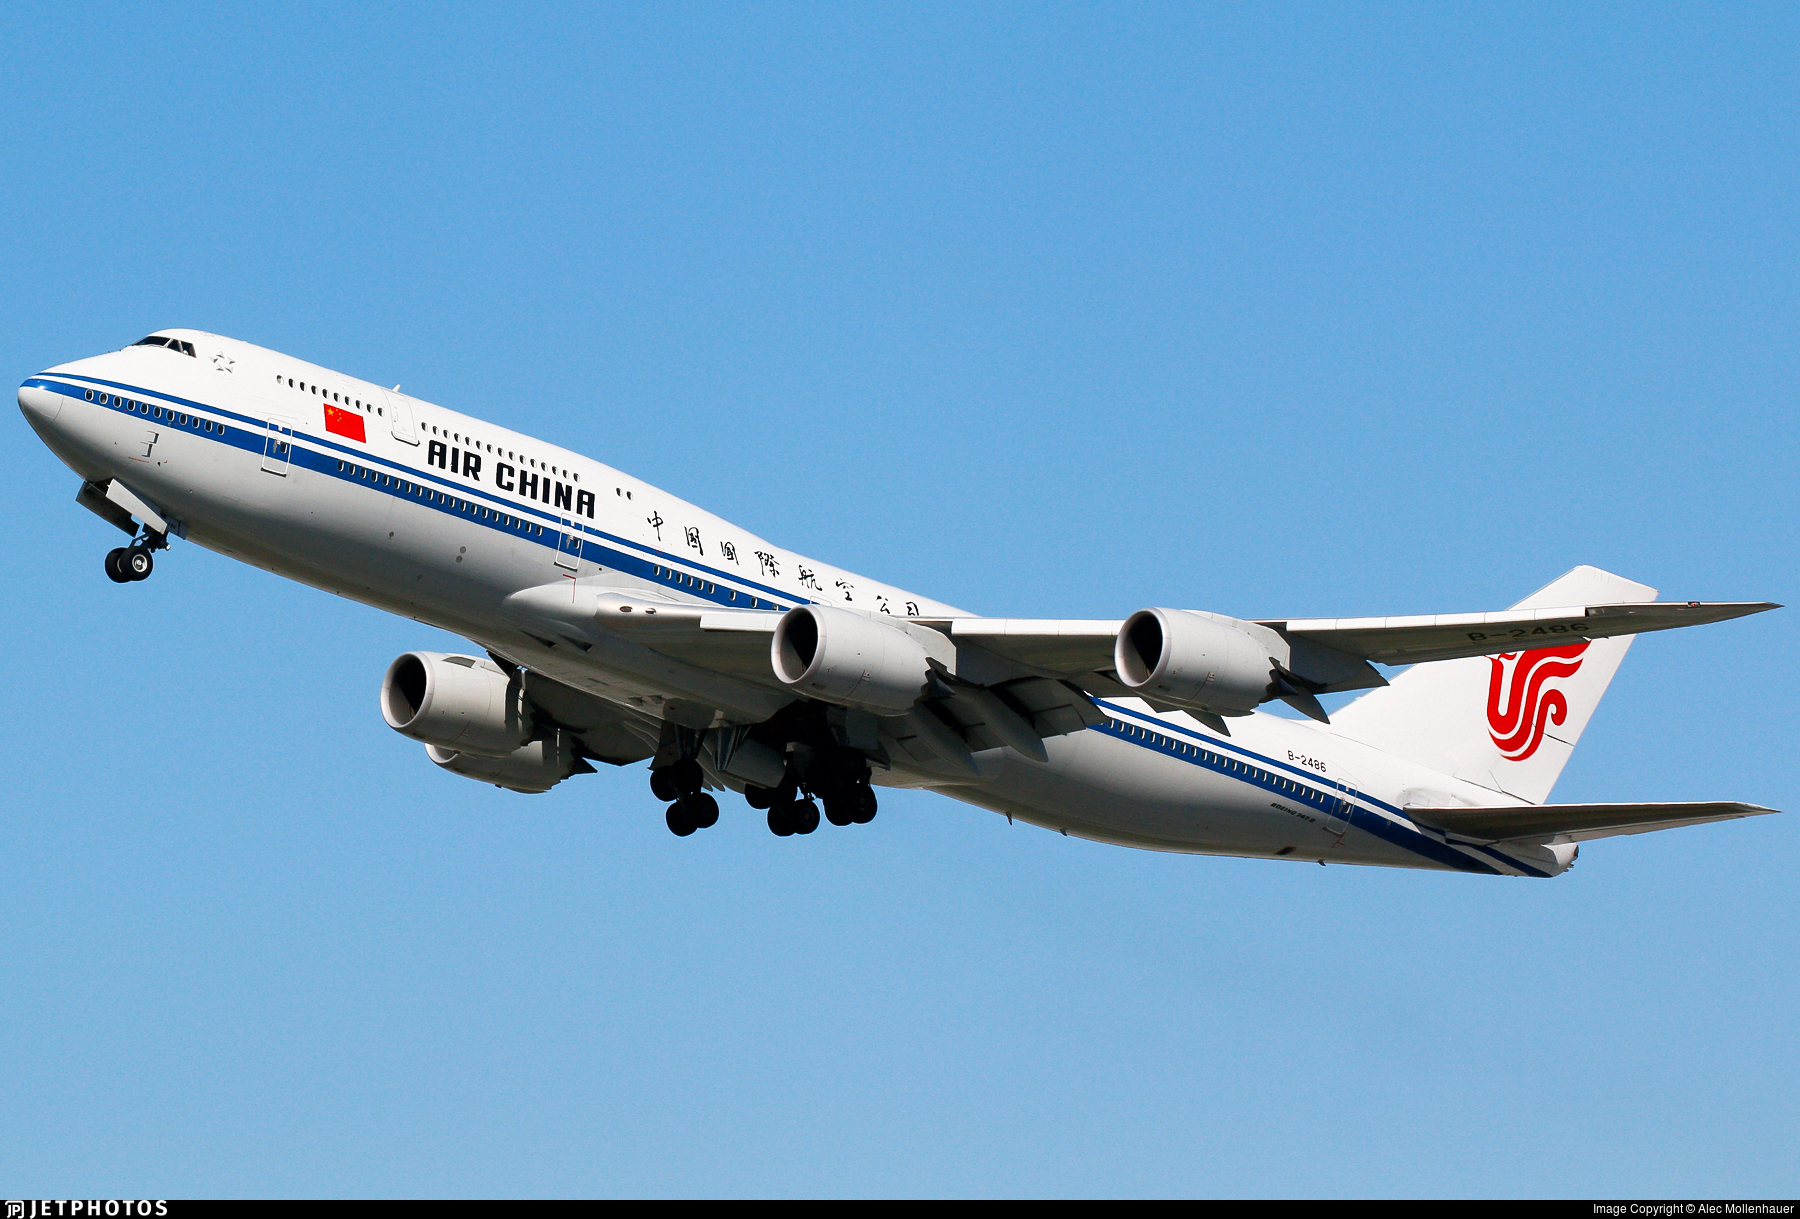 Air China 747 747-8I China grows its aviation influence